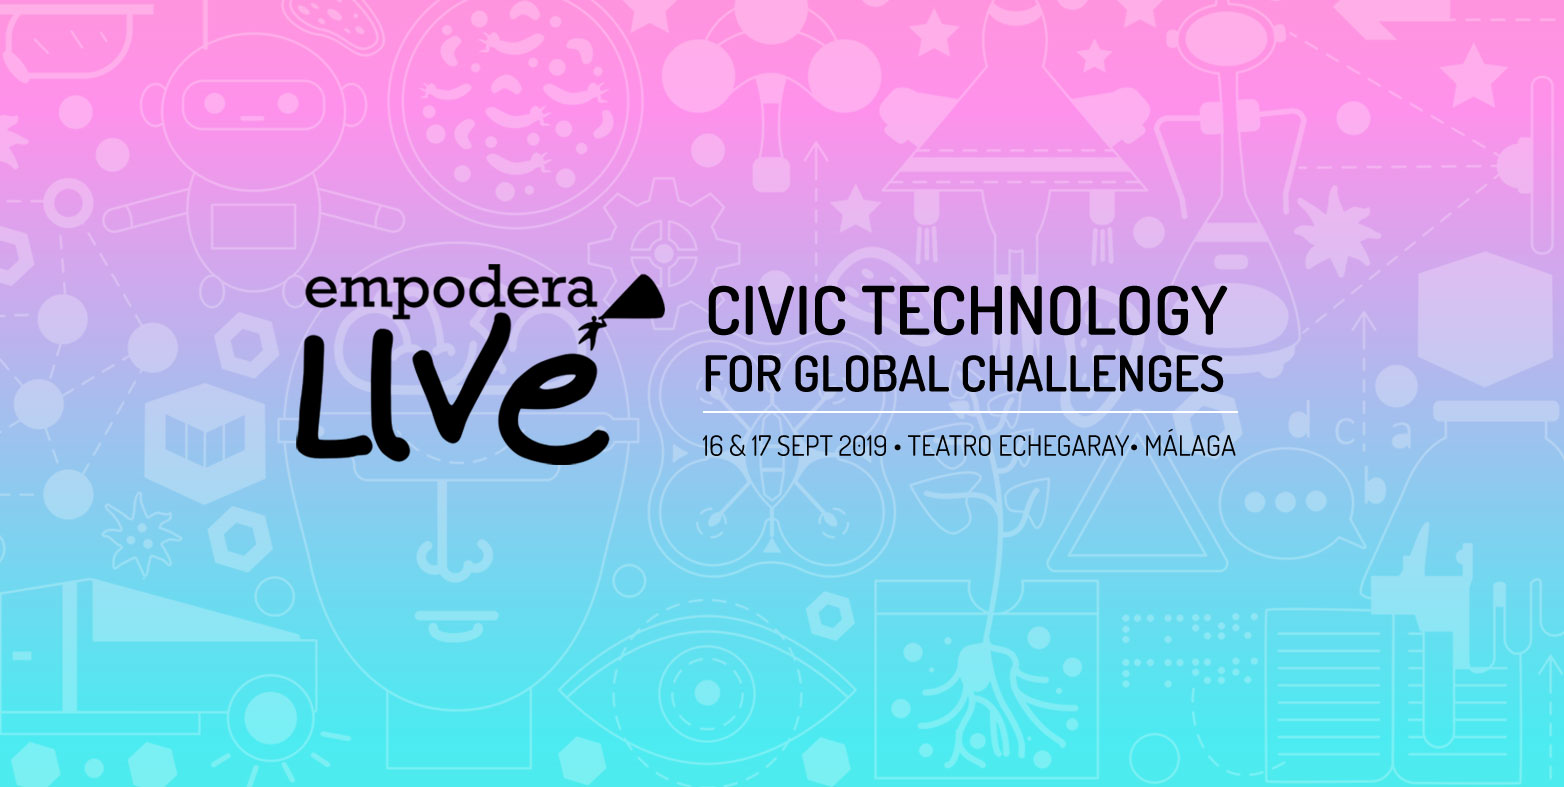 Discover #EmpoderaLIVE 2019: Civic technology for global challenges